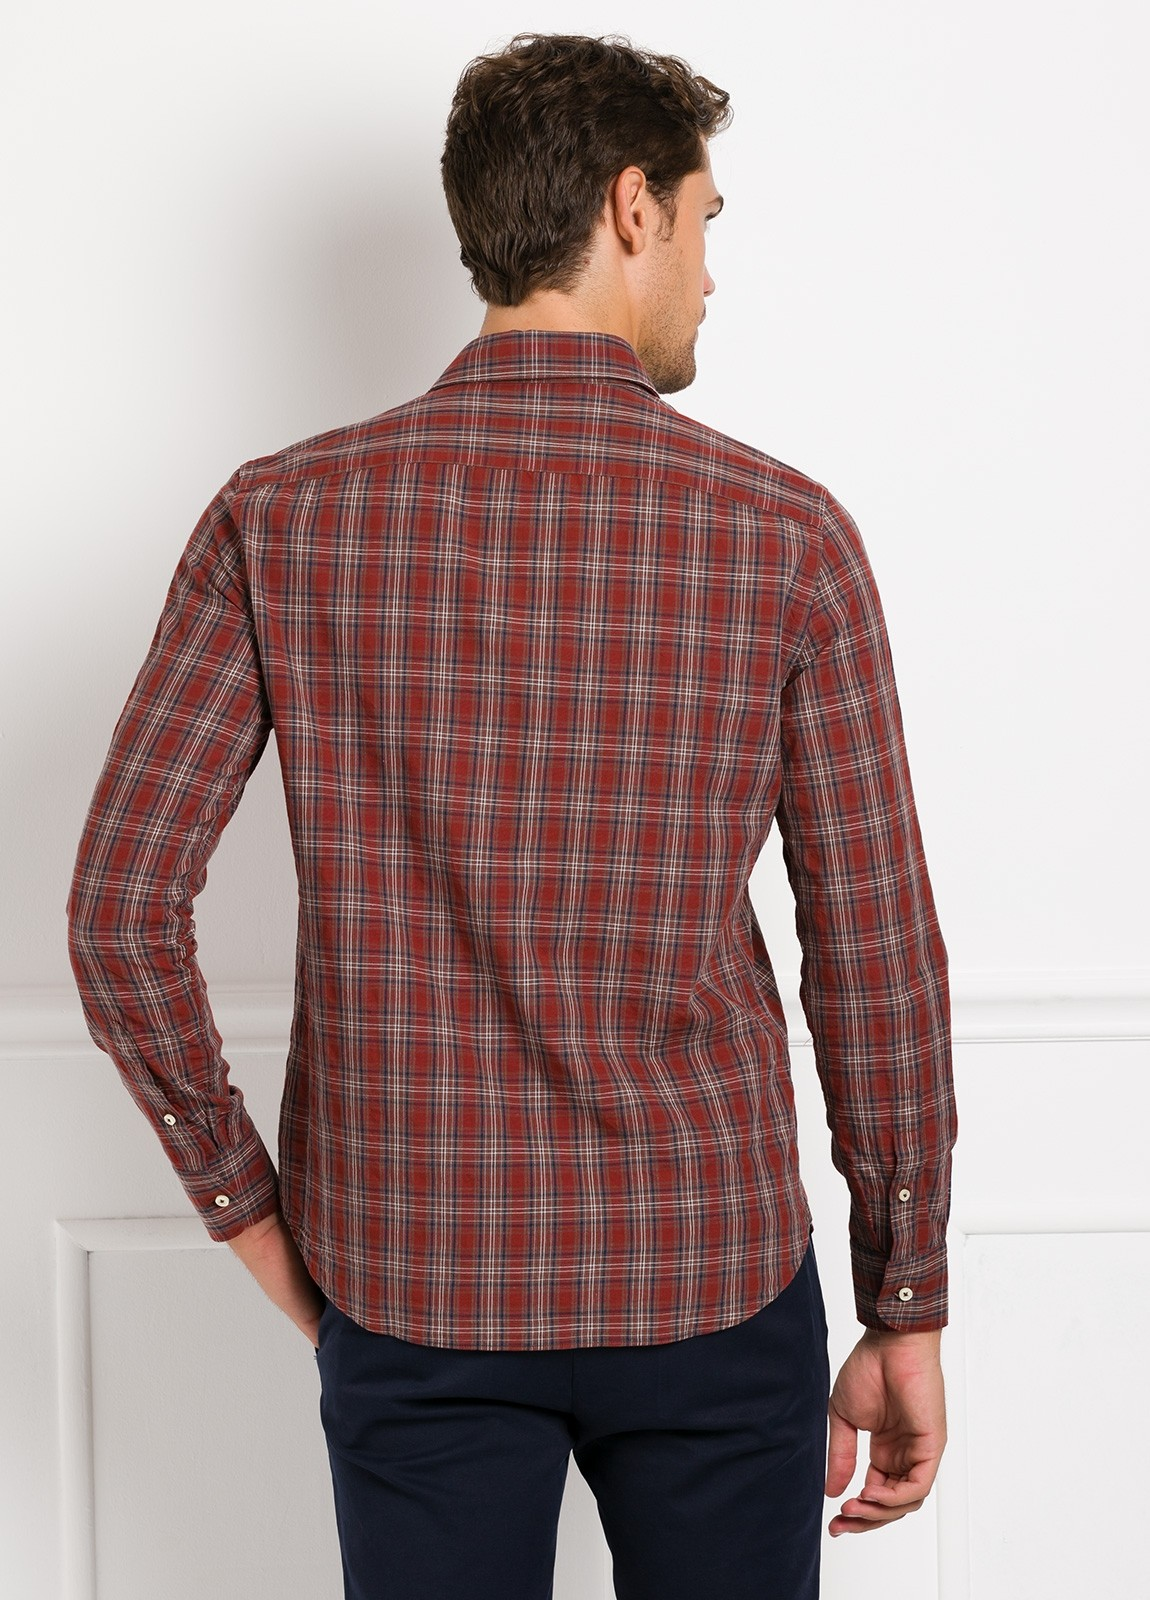 Camisa Leisure Wear REGULAR FIT modelo PORTO, cuadros granate, marrón. 100% Algodón. - Ítem4